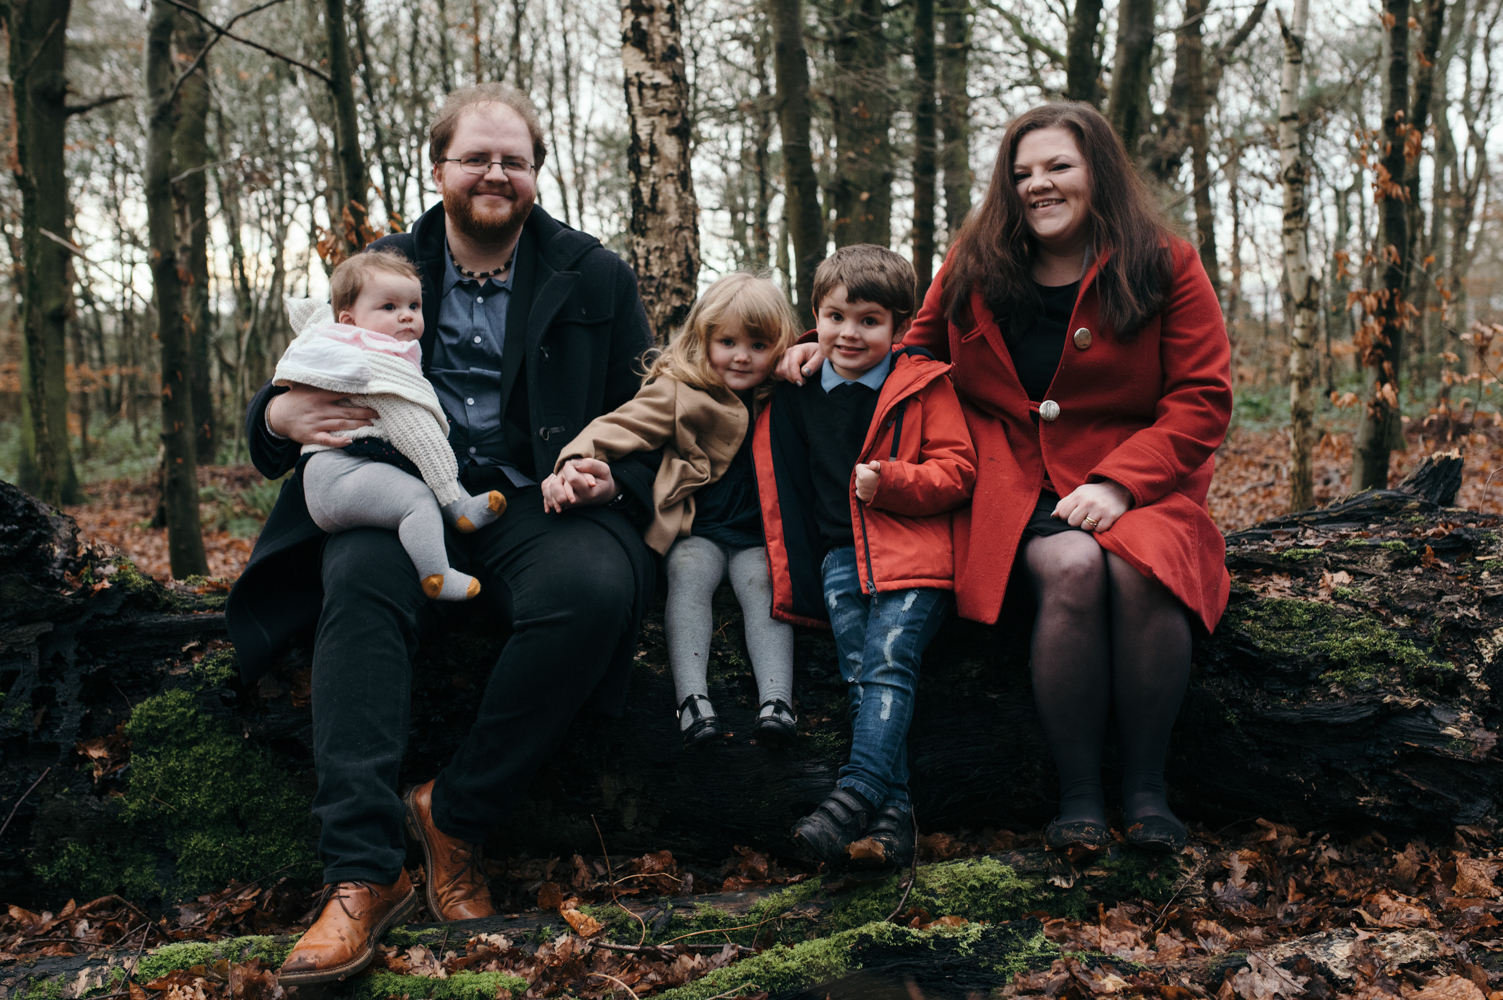 A family group photo sitting on an upturned log in the woods